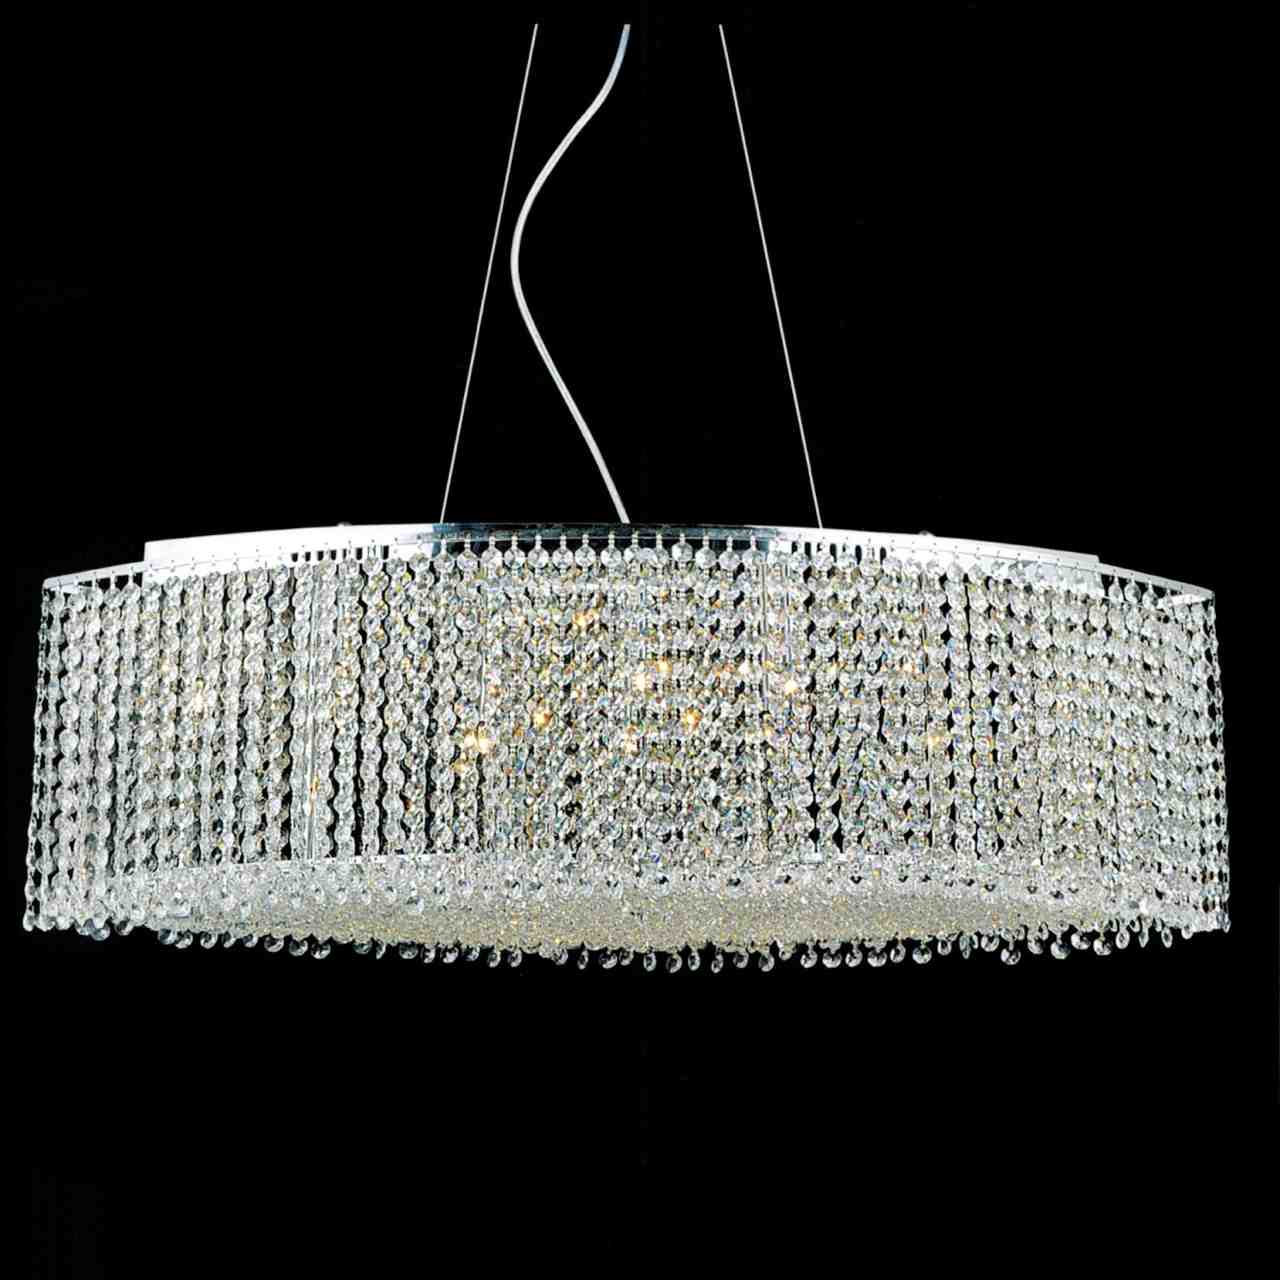 Brizzo lighting stores 35 rainbow modern linear crystal chandelier picture of 35 rainbow modern linear crystal chandelier polished chrome 15 lights aloadofball Choice Image